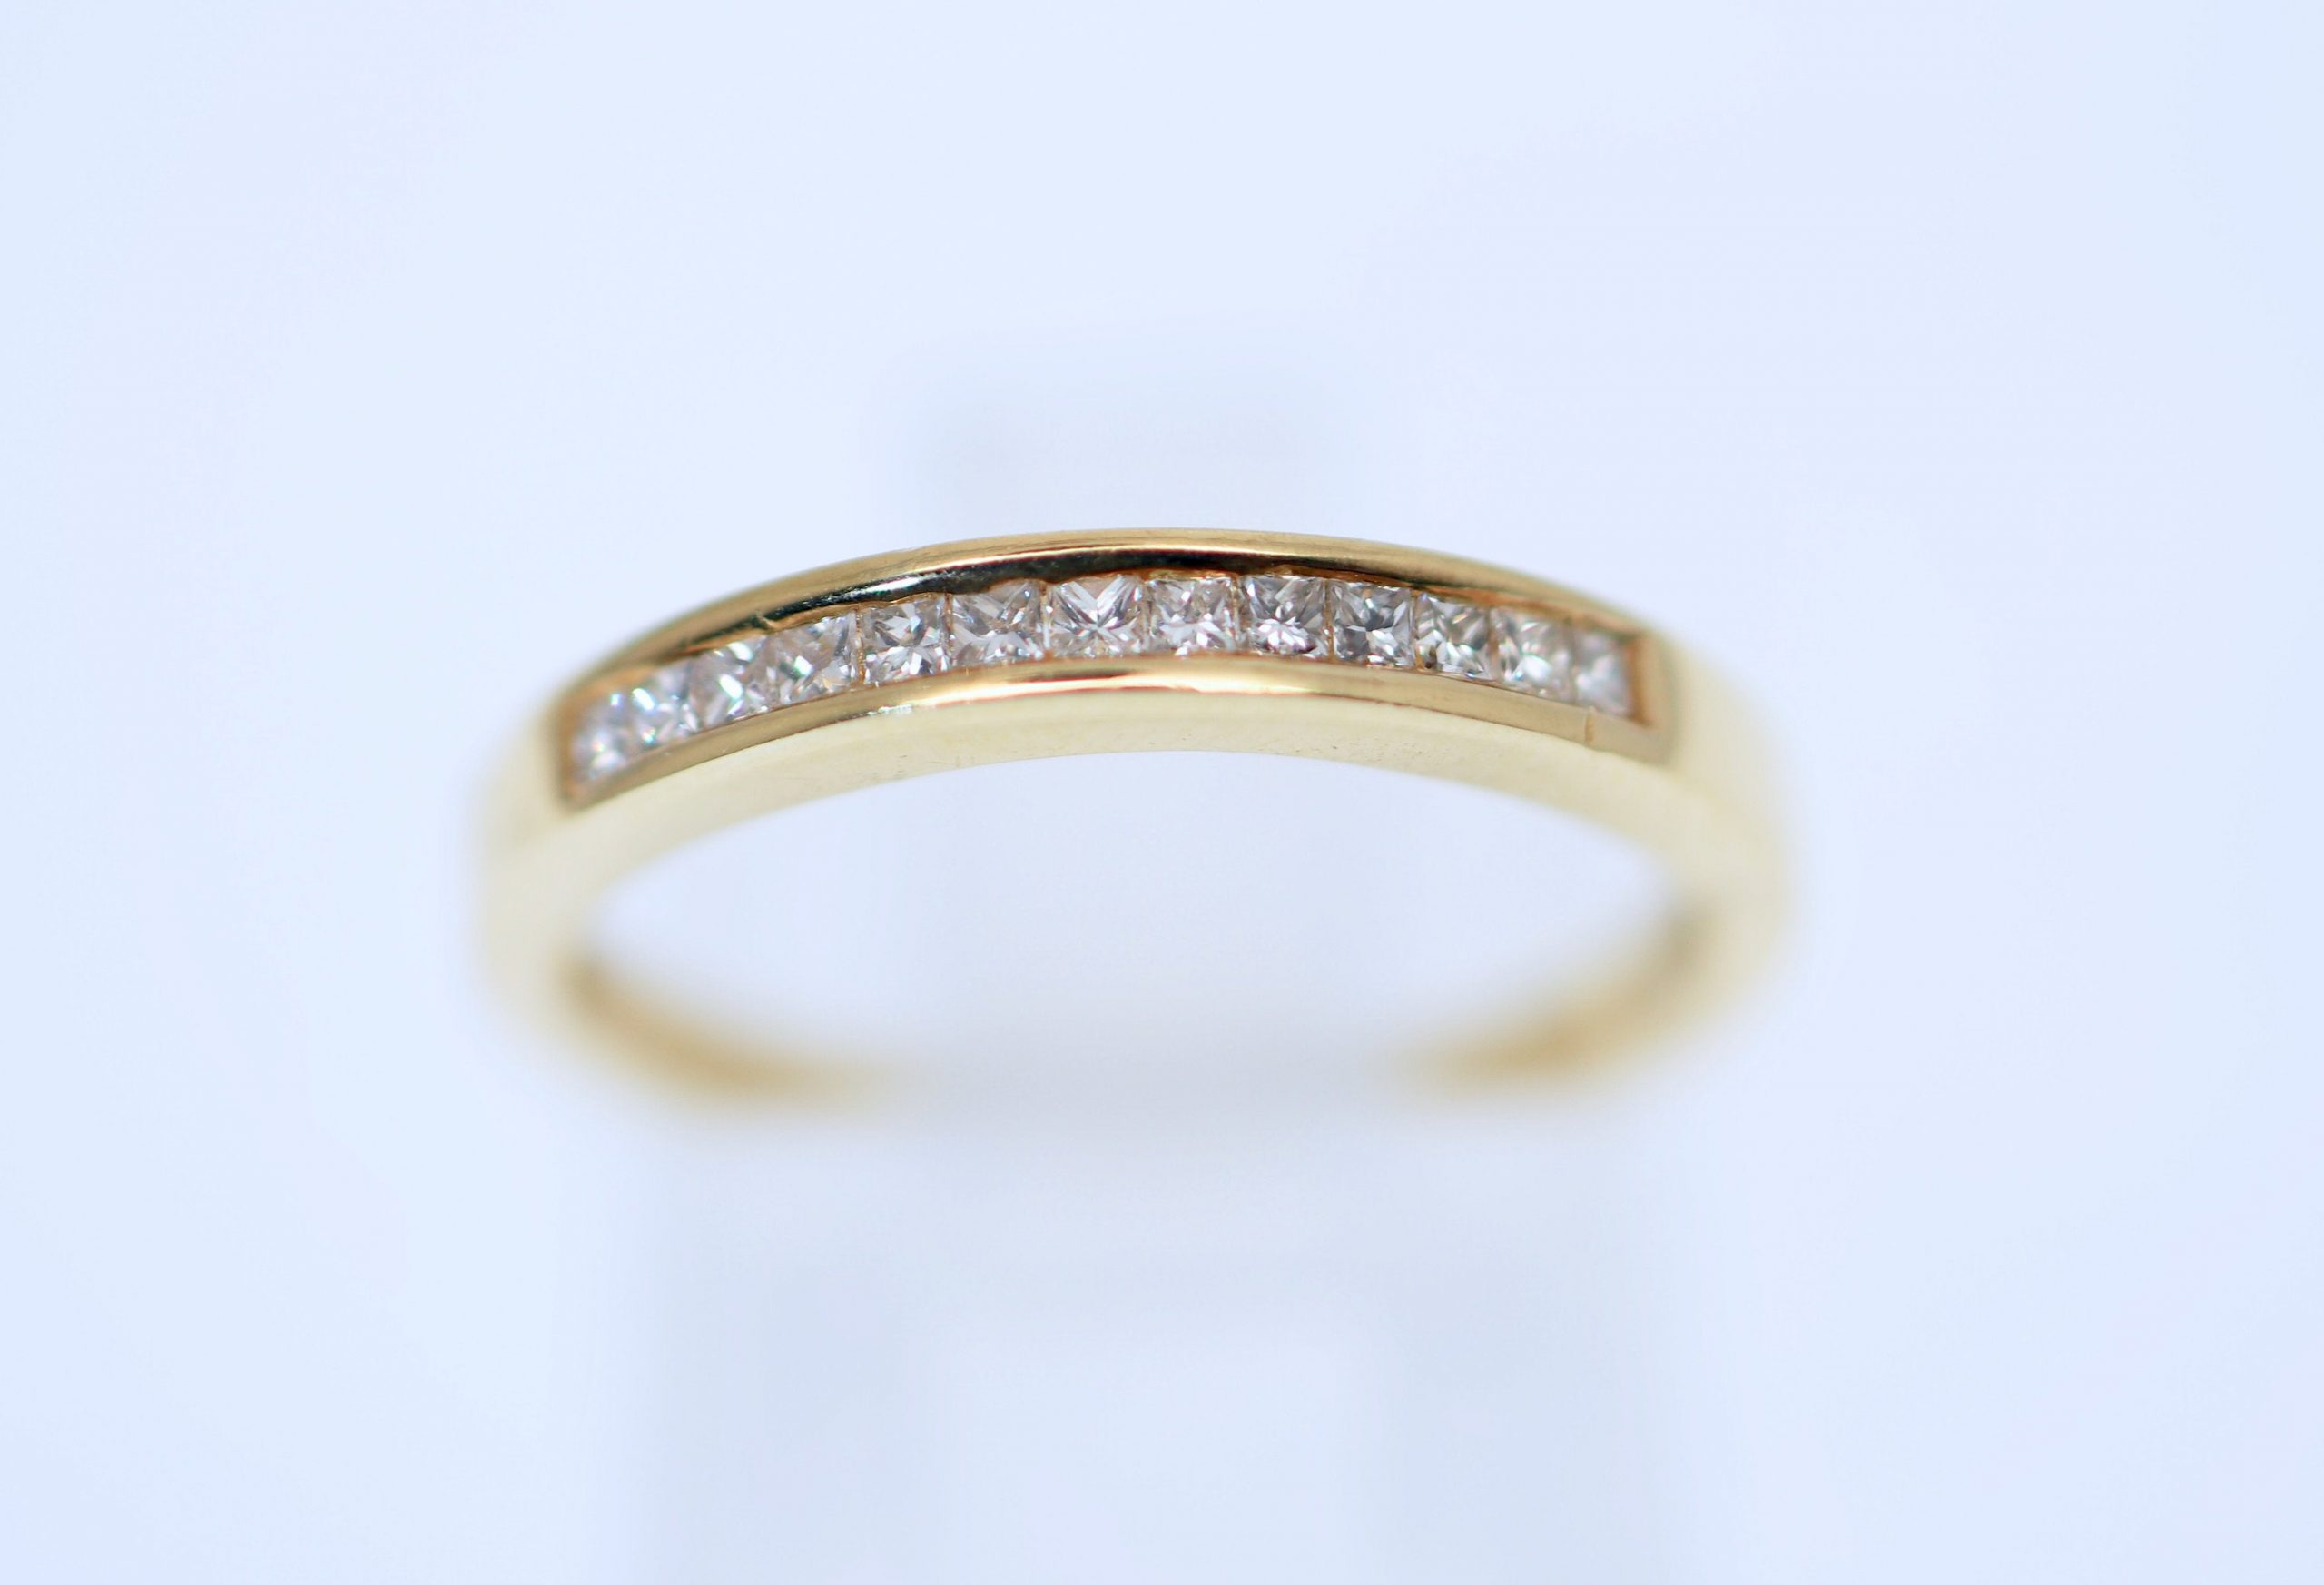 A Classic 18K Yellow Gold Lady's Natural Diamond Channel Set Wedding/Anniversary/stackable Band Jewellery Size 6 Or L